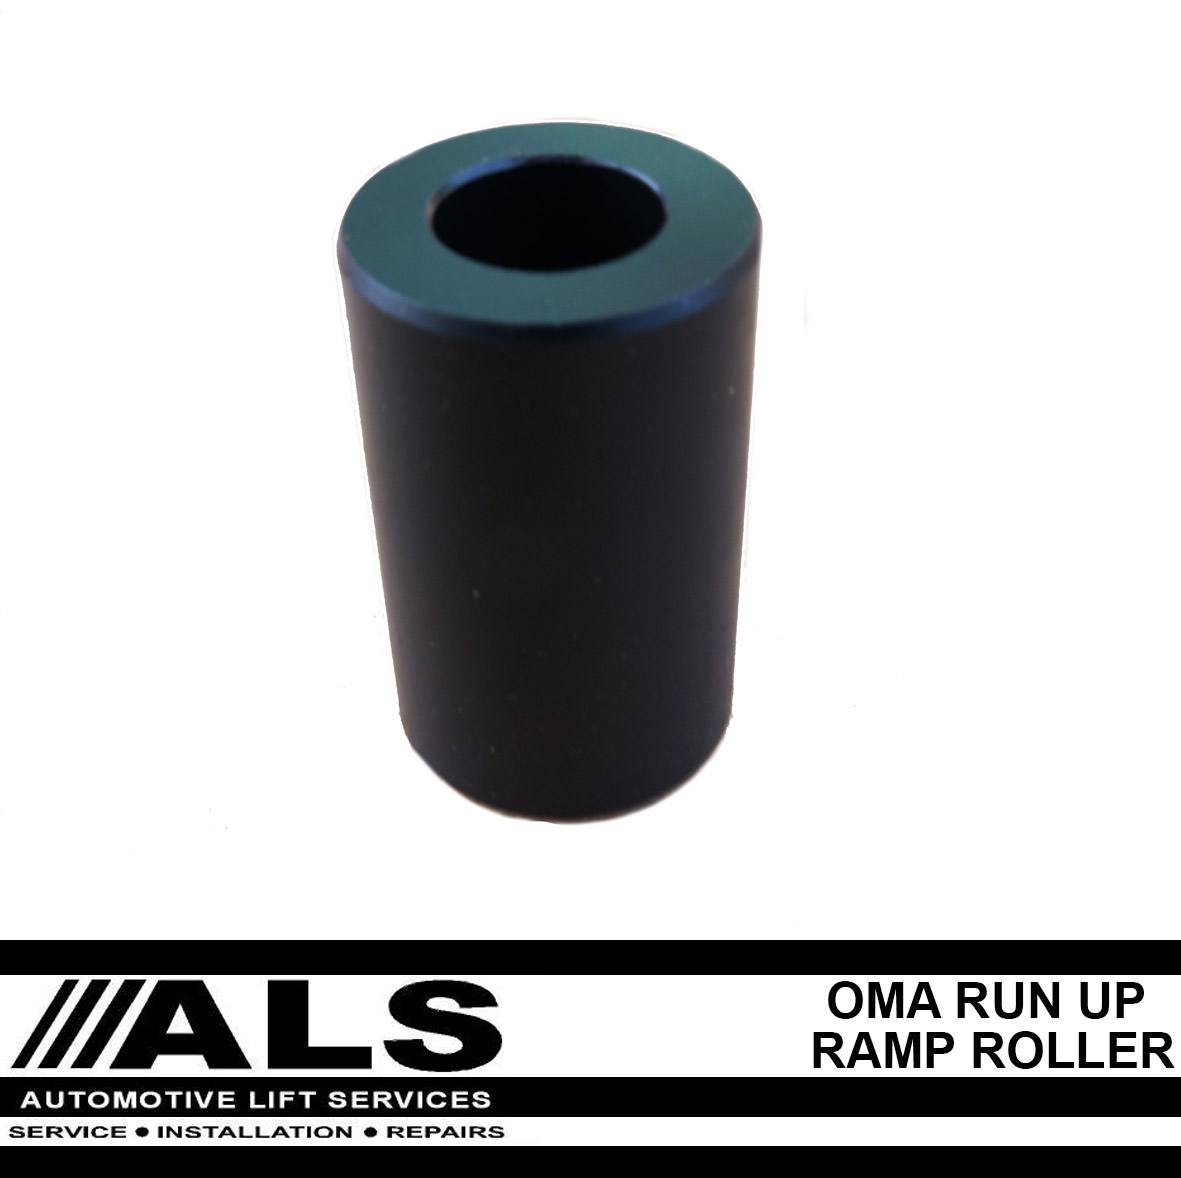 https://www.automotiveliftservices.co.uk/wp-content/uploads/2018/10/OMA-RUN-UP-RAMP-ROLLER.jpg